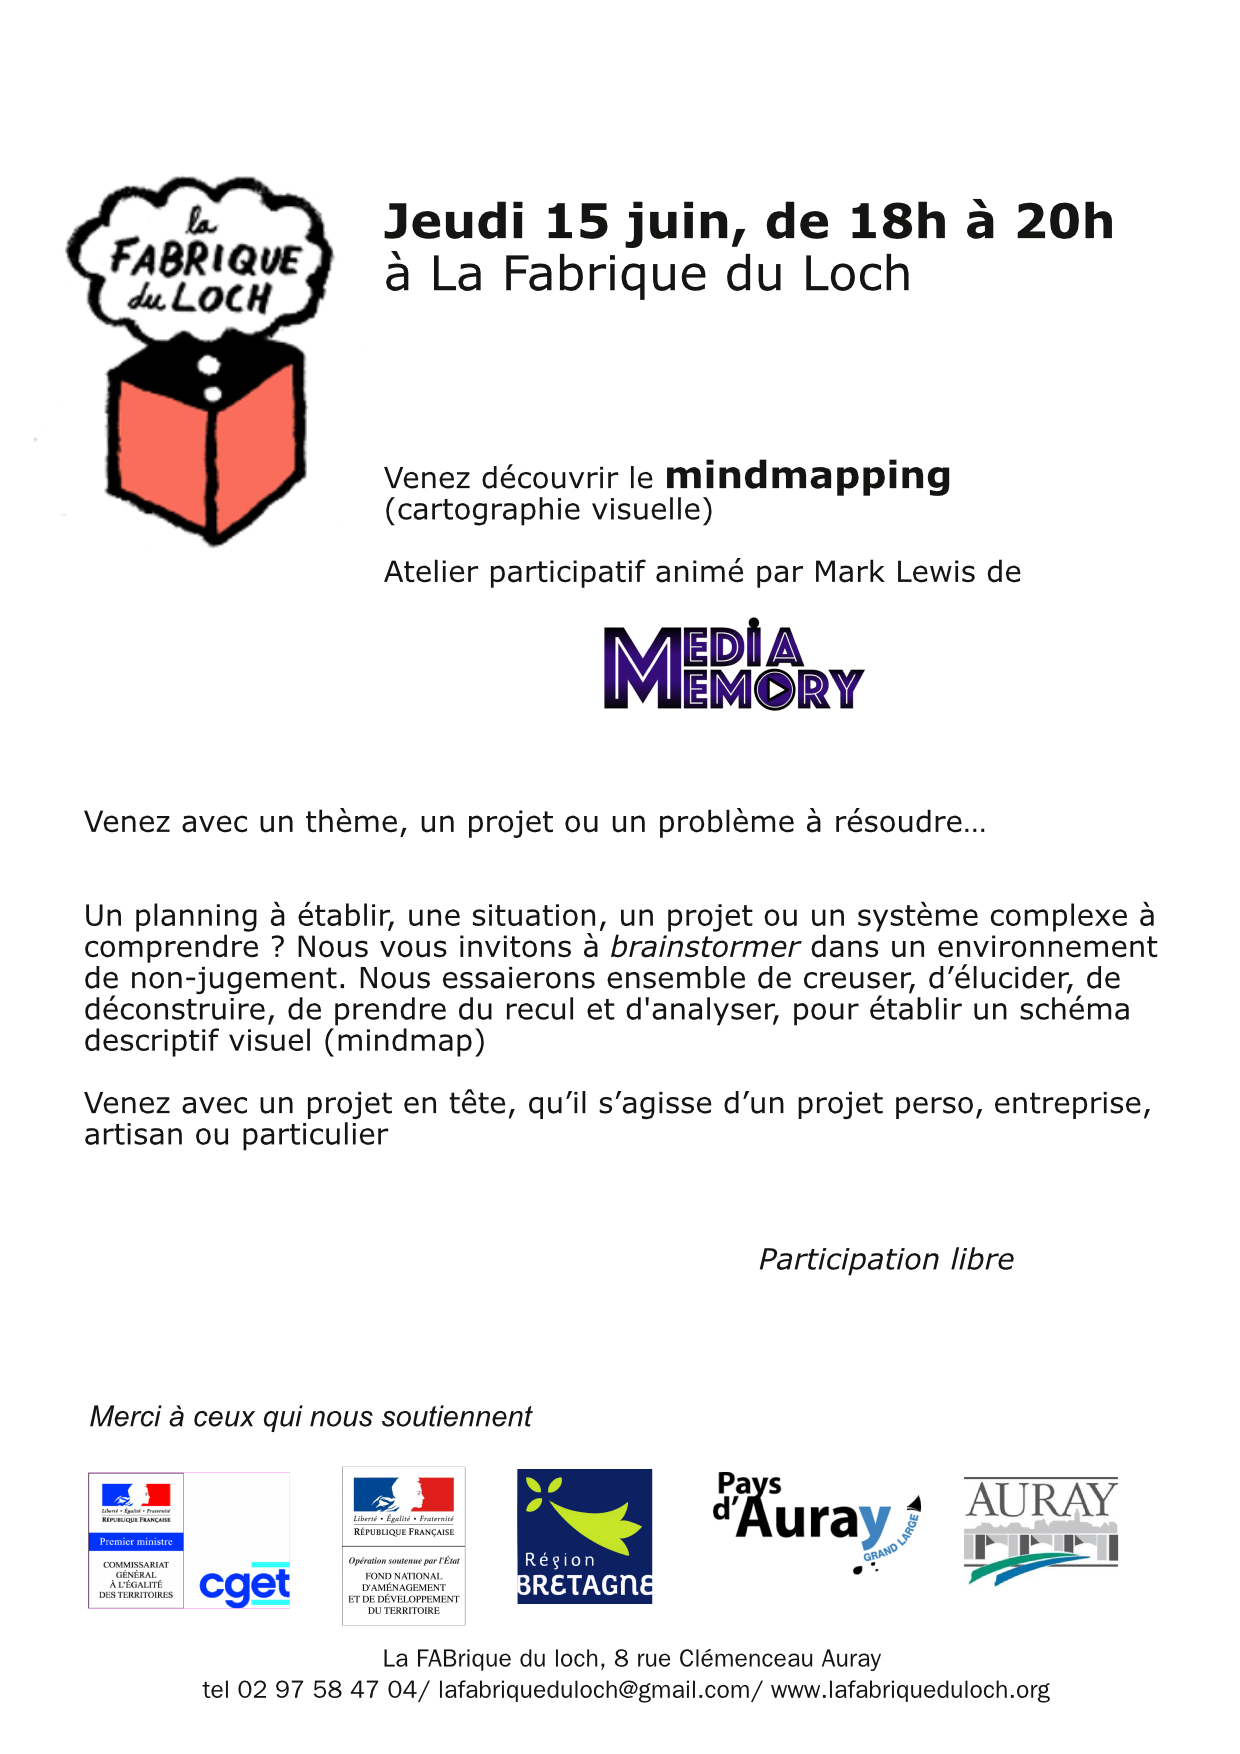 VendrediMoitout/mindmapping/la Fabrique du Loch